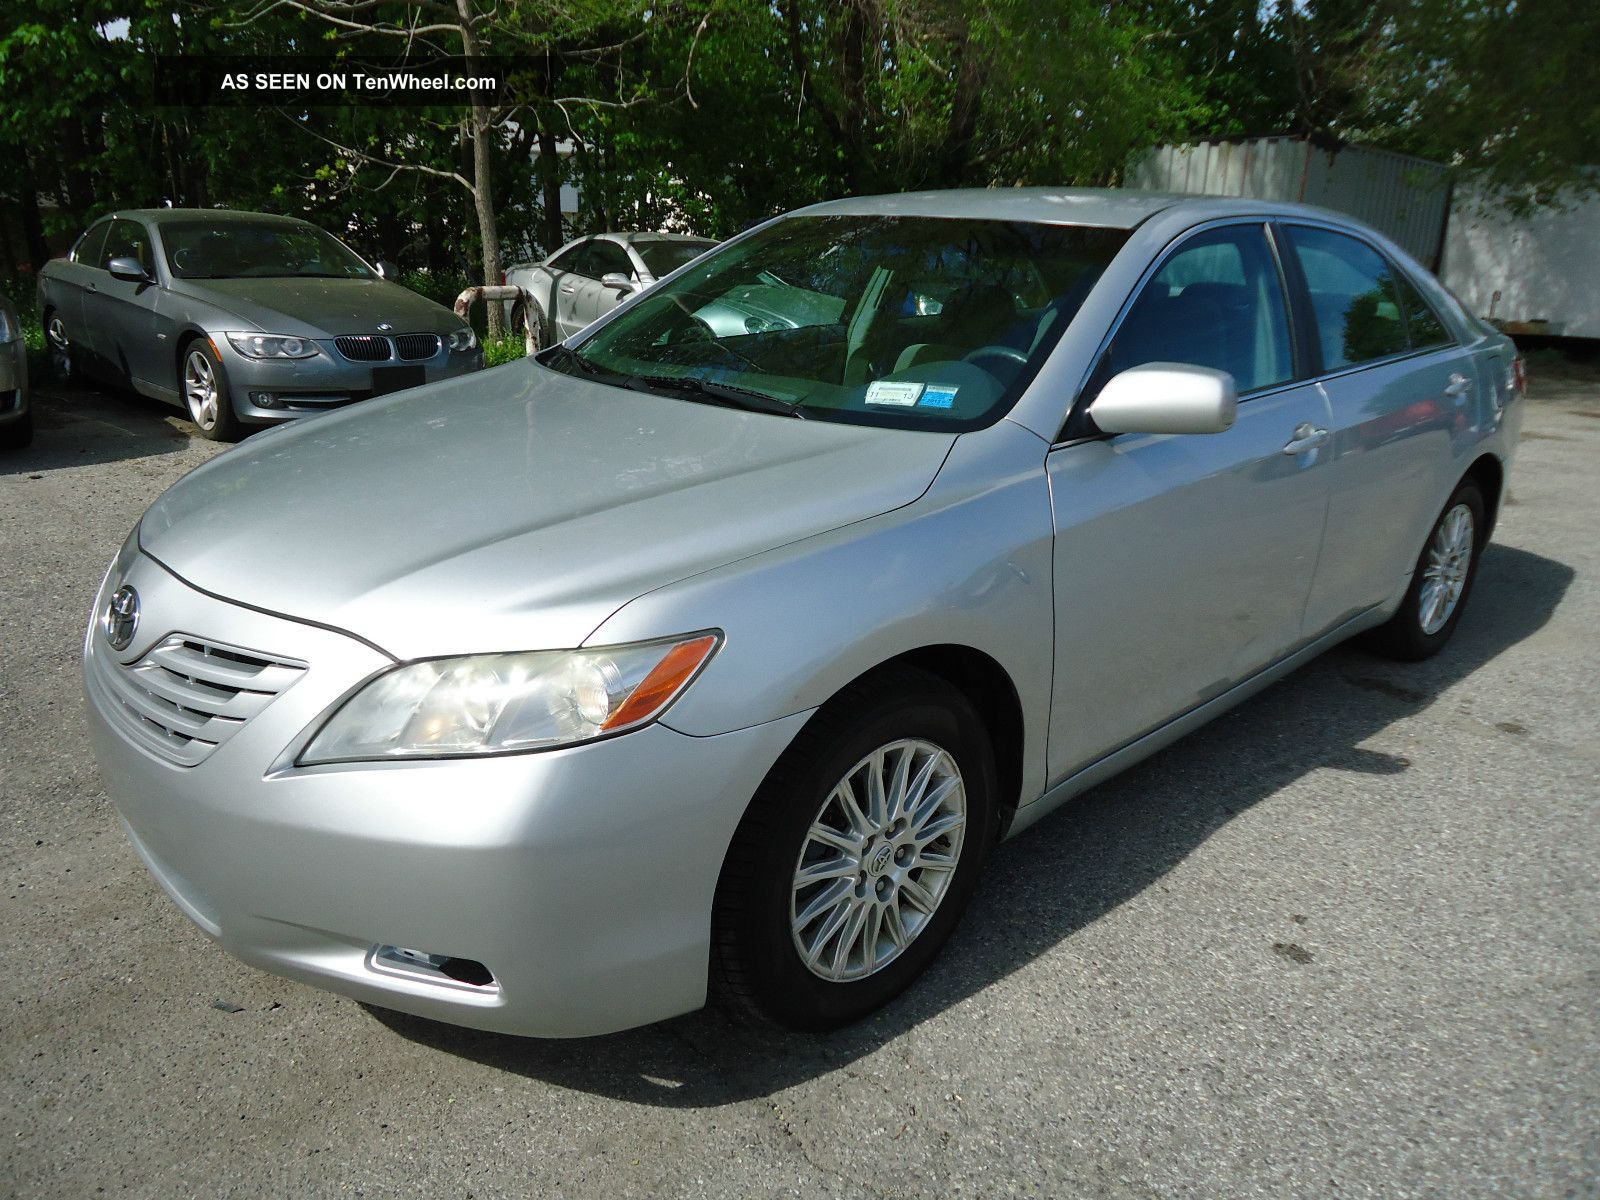 2007 toyota camry le sedan 2 4l 4cyl drives great. Black Bedroom Furniture Sets. Home Design Ideas